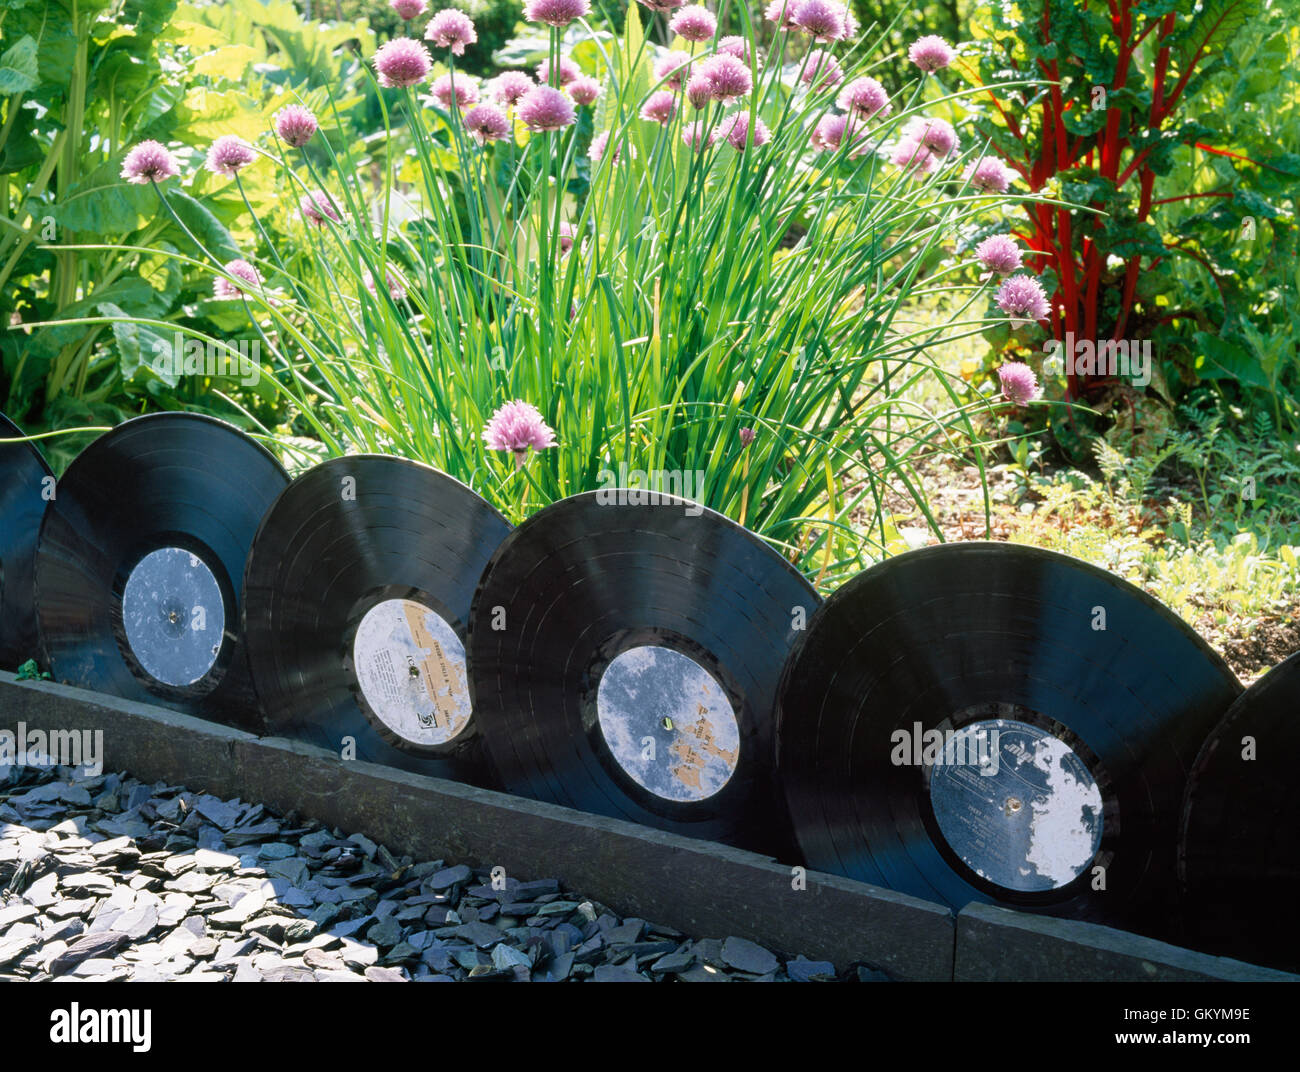 Old Vinyl Records Used As Edging To Border A Vegetable Patch. Caernarfon,  North Wales